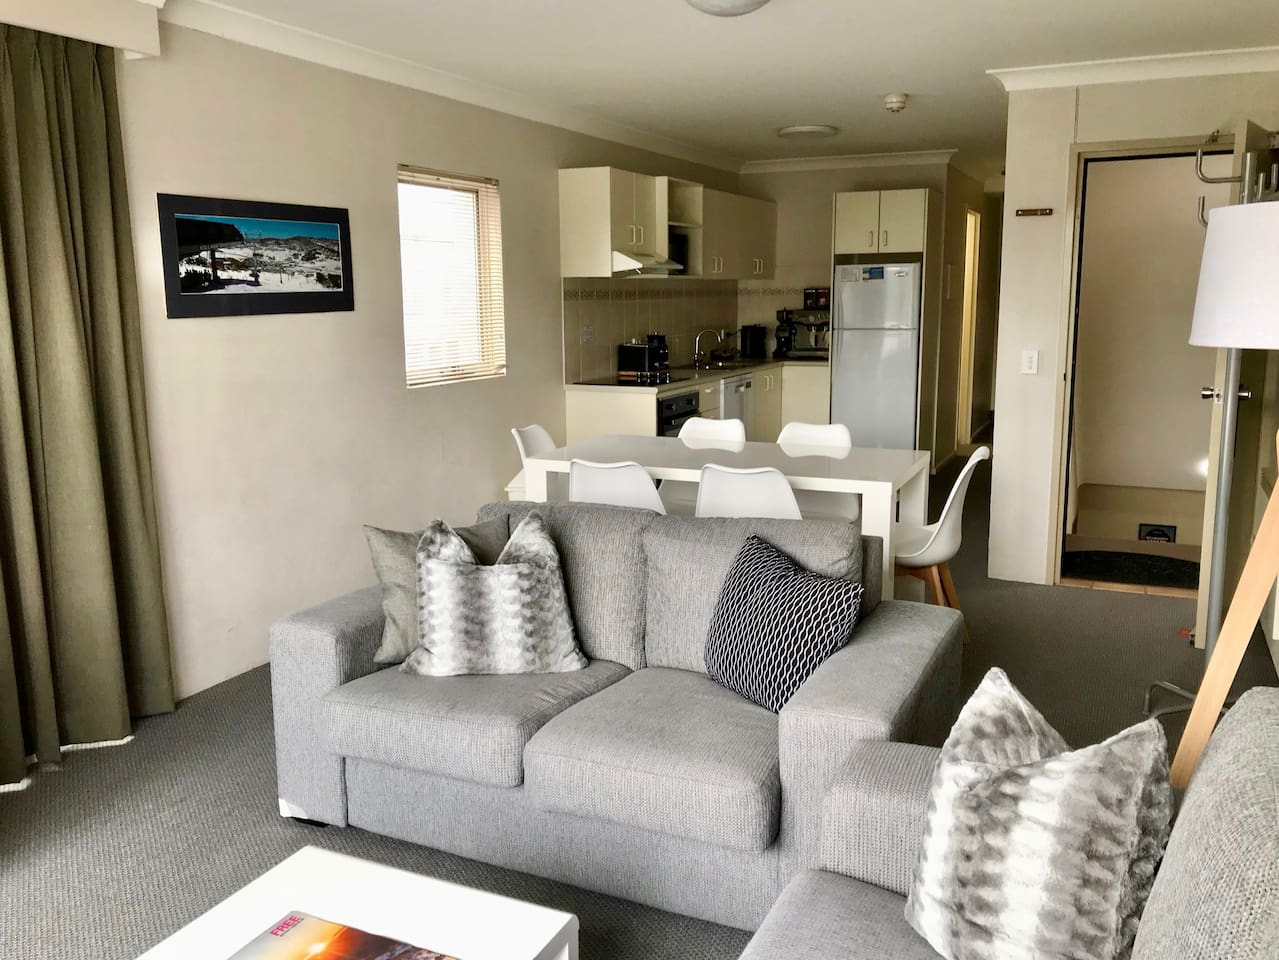 two bedroom-two storey-two bathrooms apartment with new stove/oven, fully equipped kitchen, Breville coffee machine. Sleeps maximum 6